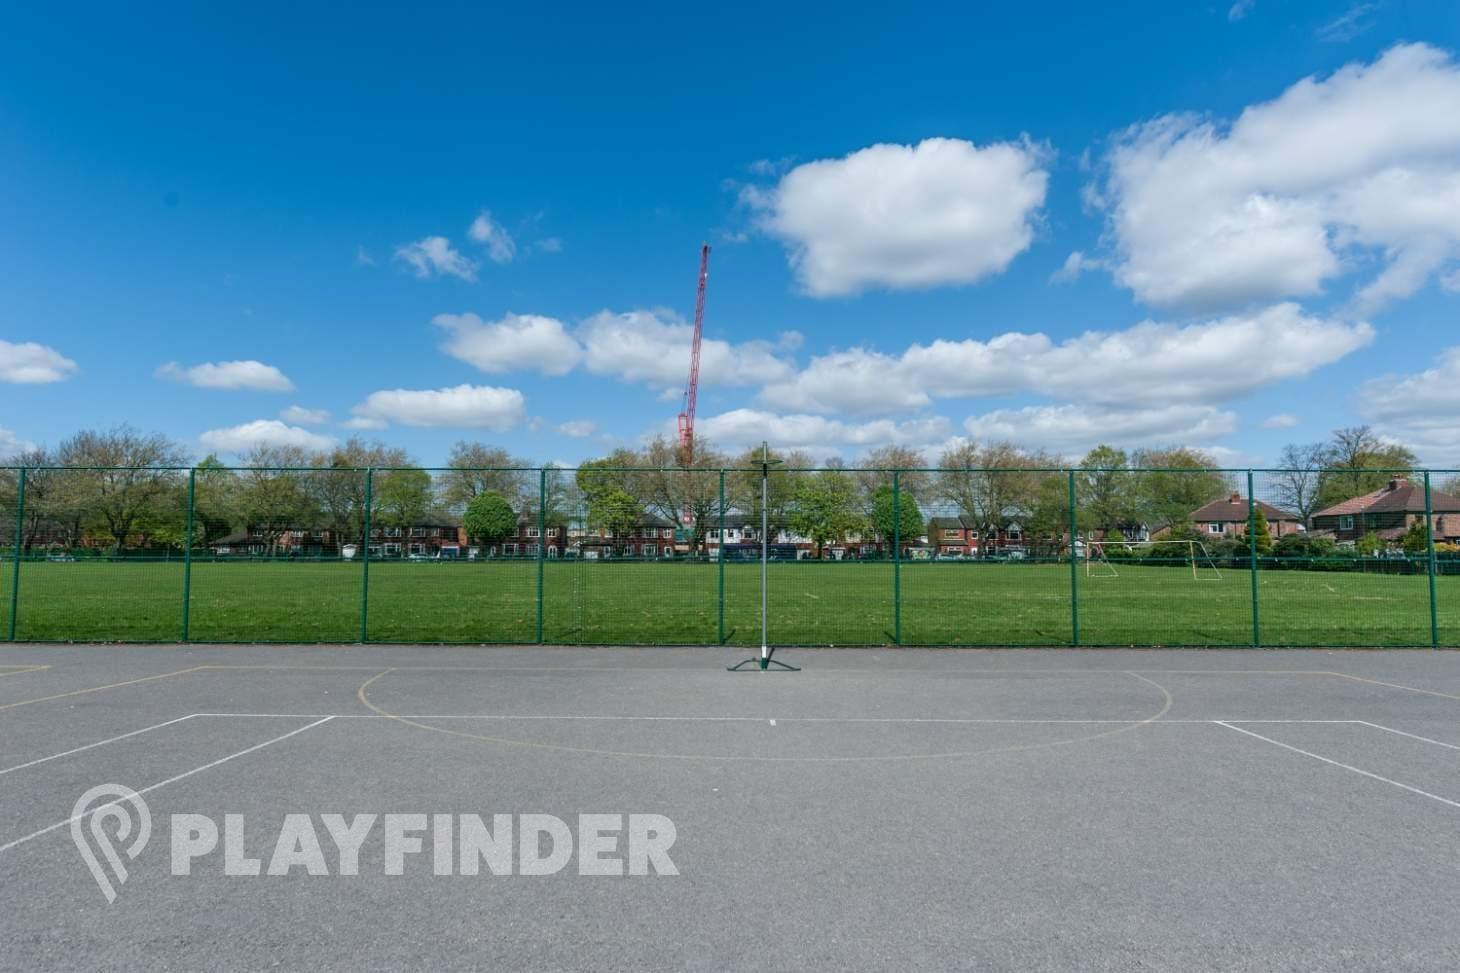 Flixton Girls School Outdoor | Concrete netball court